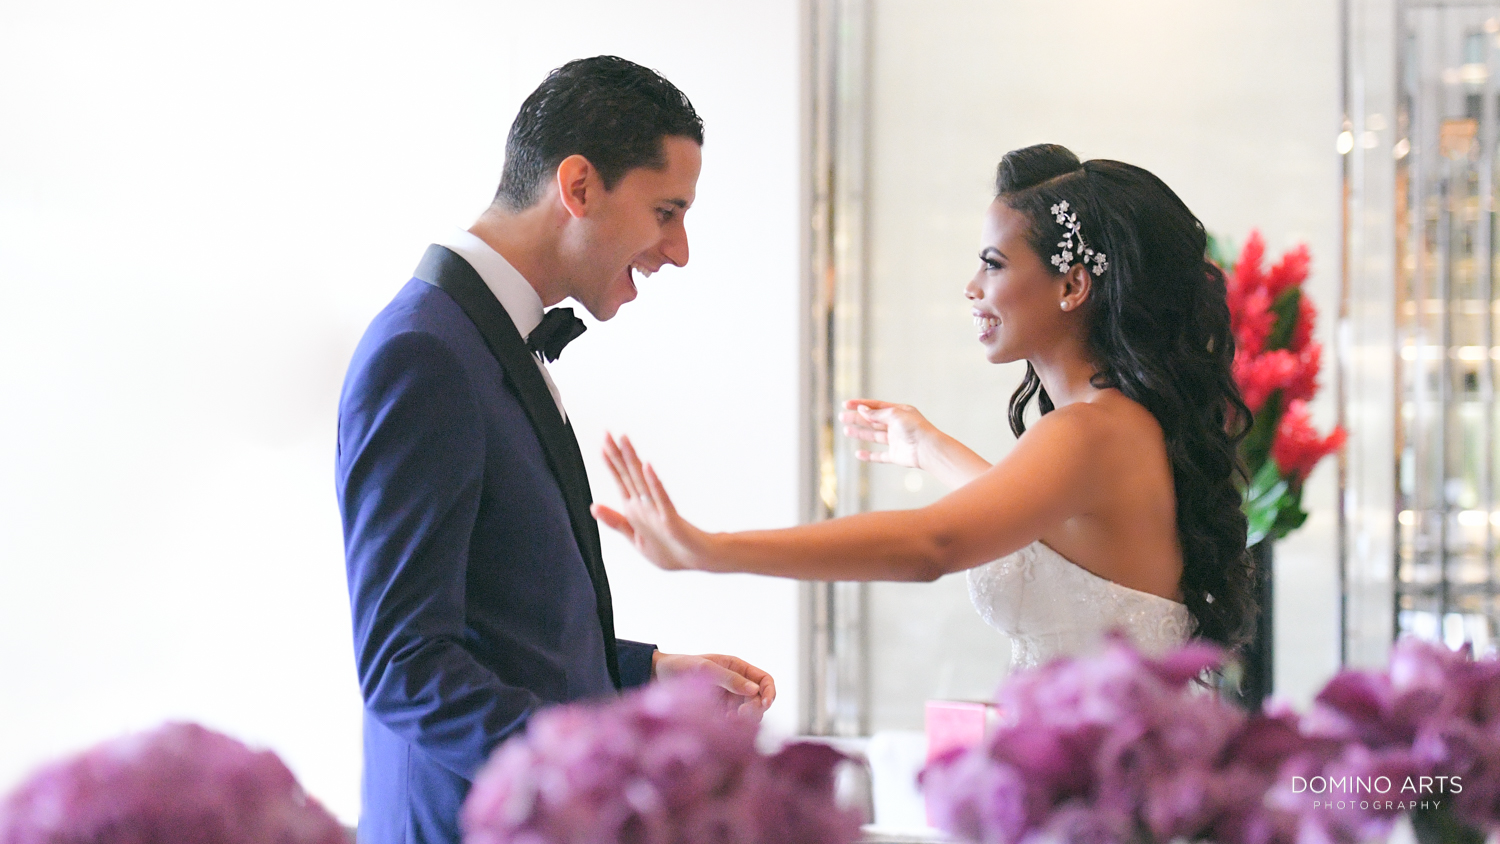 First look of bride and groom pictures at The St. Regis Bal Harbour